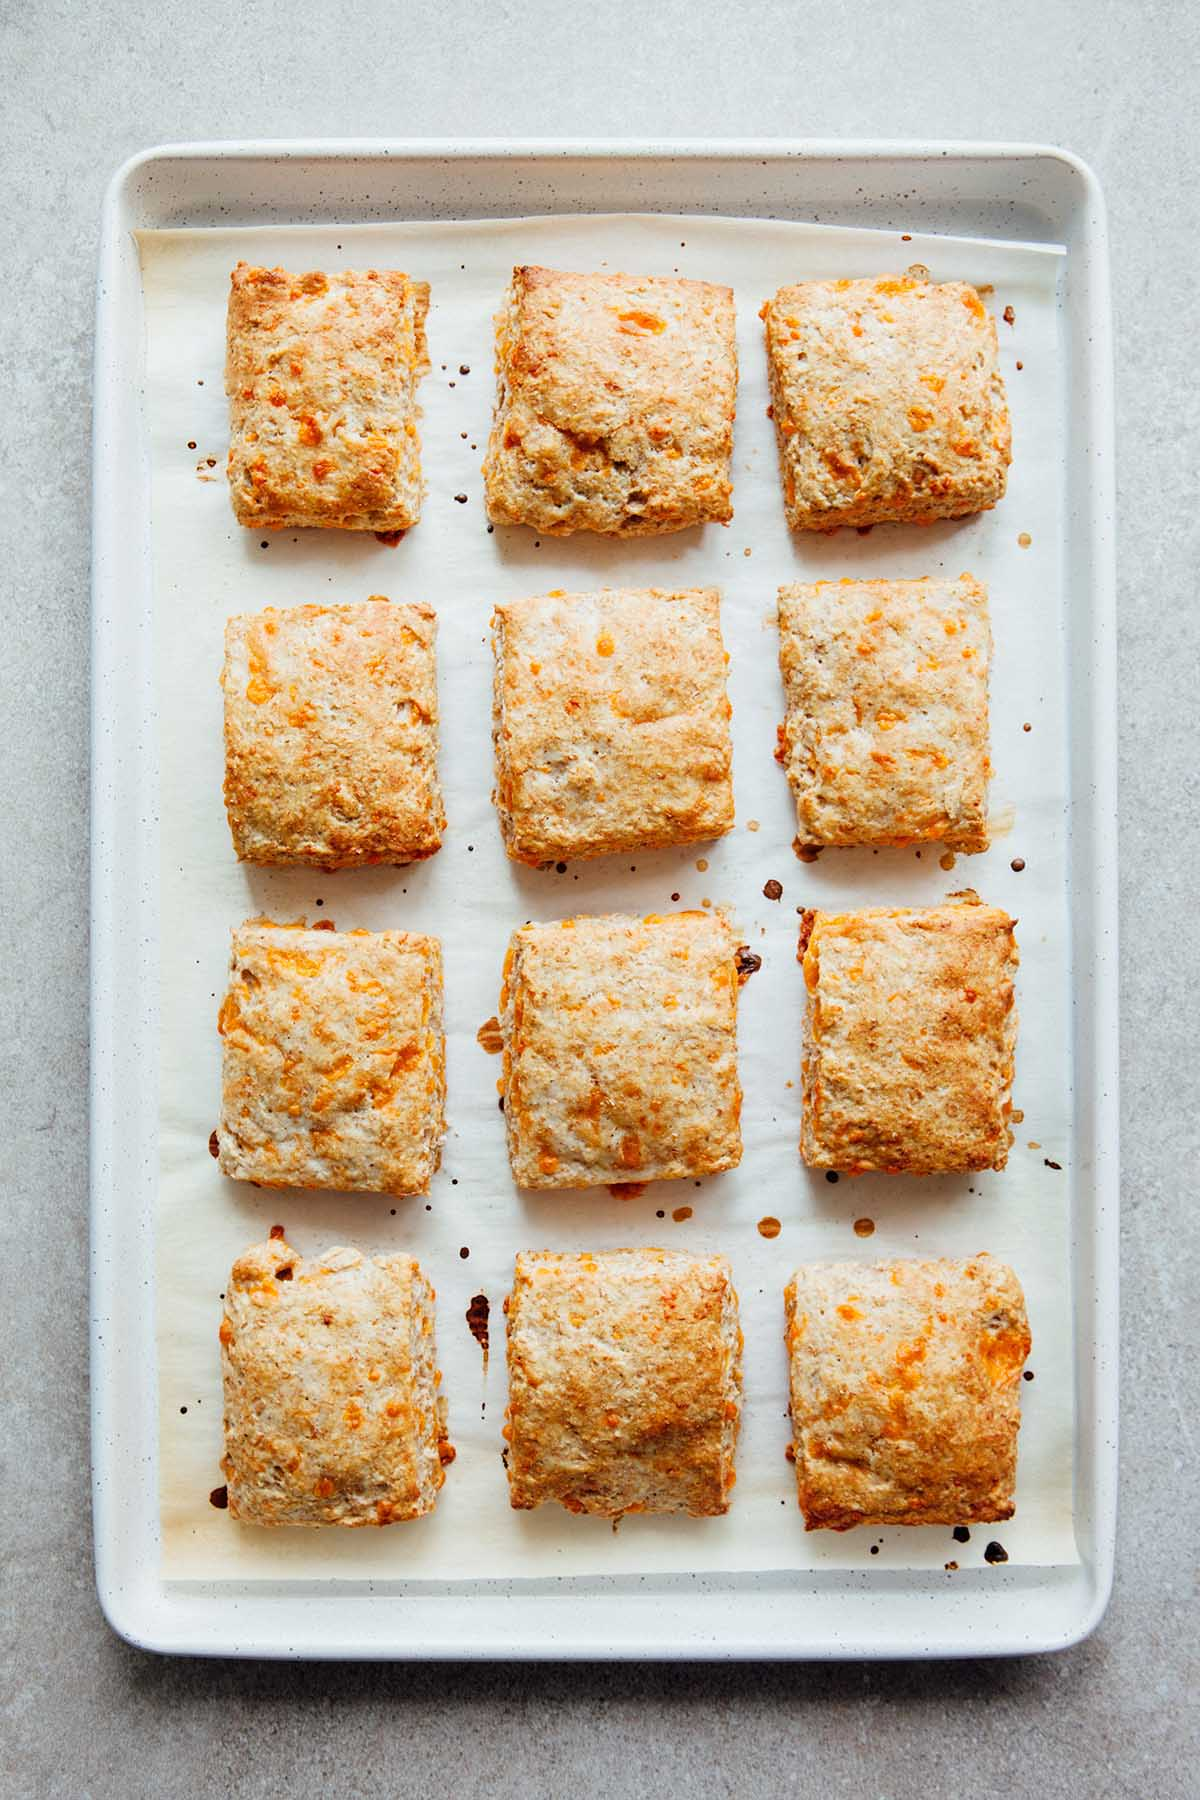 Overhead photo of a full pan of a dozen baked whole wheat cheese biscuits.